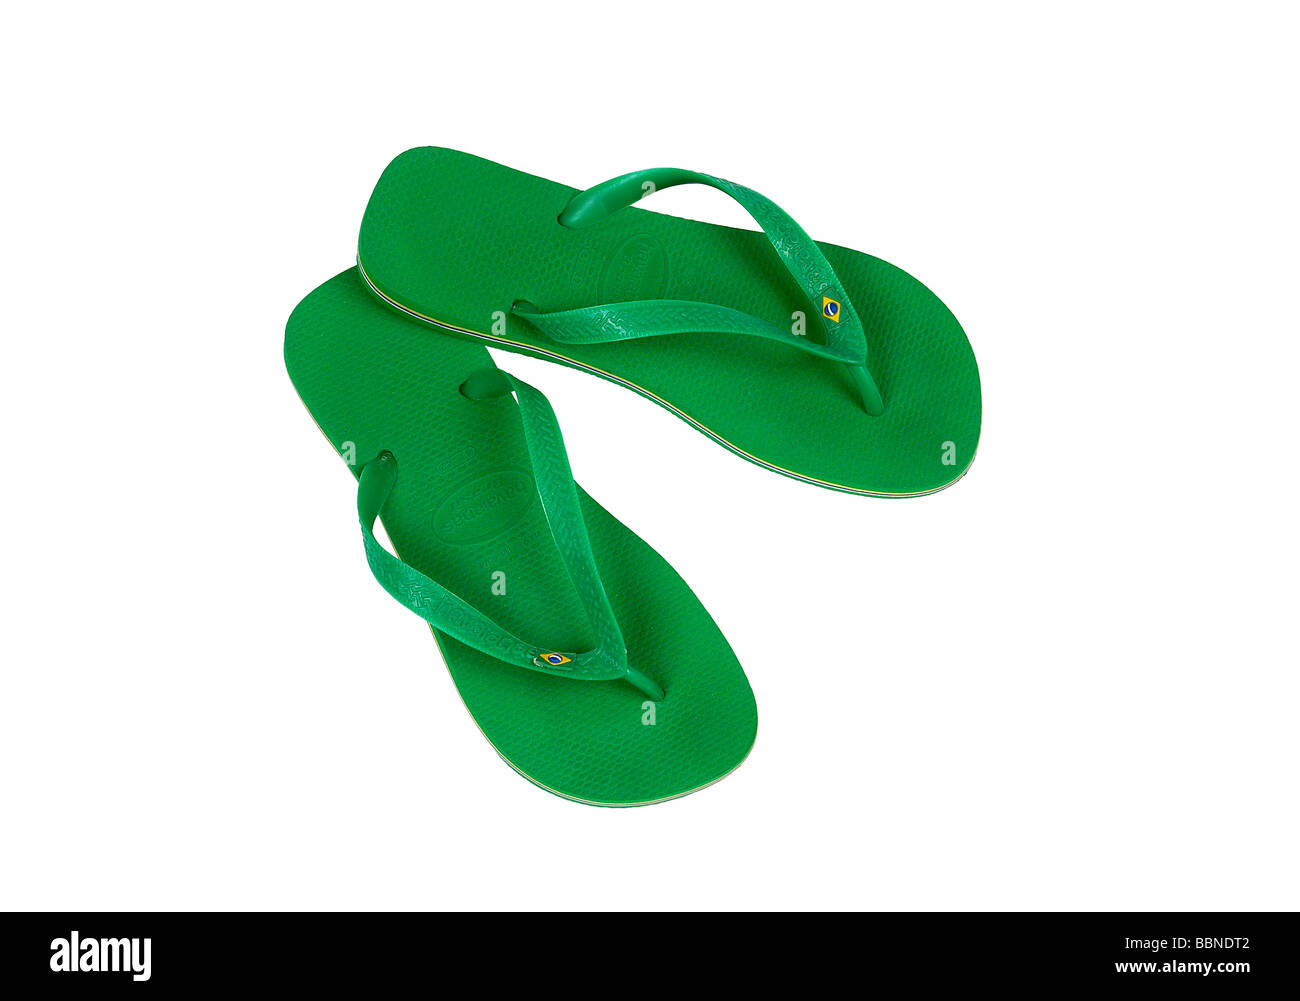 GREEN PLASTIC FLIP FLOP SHOES - Stock Image